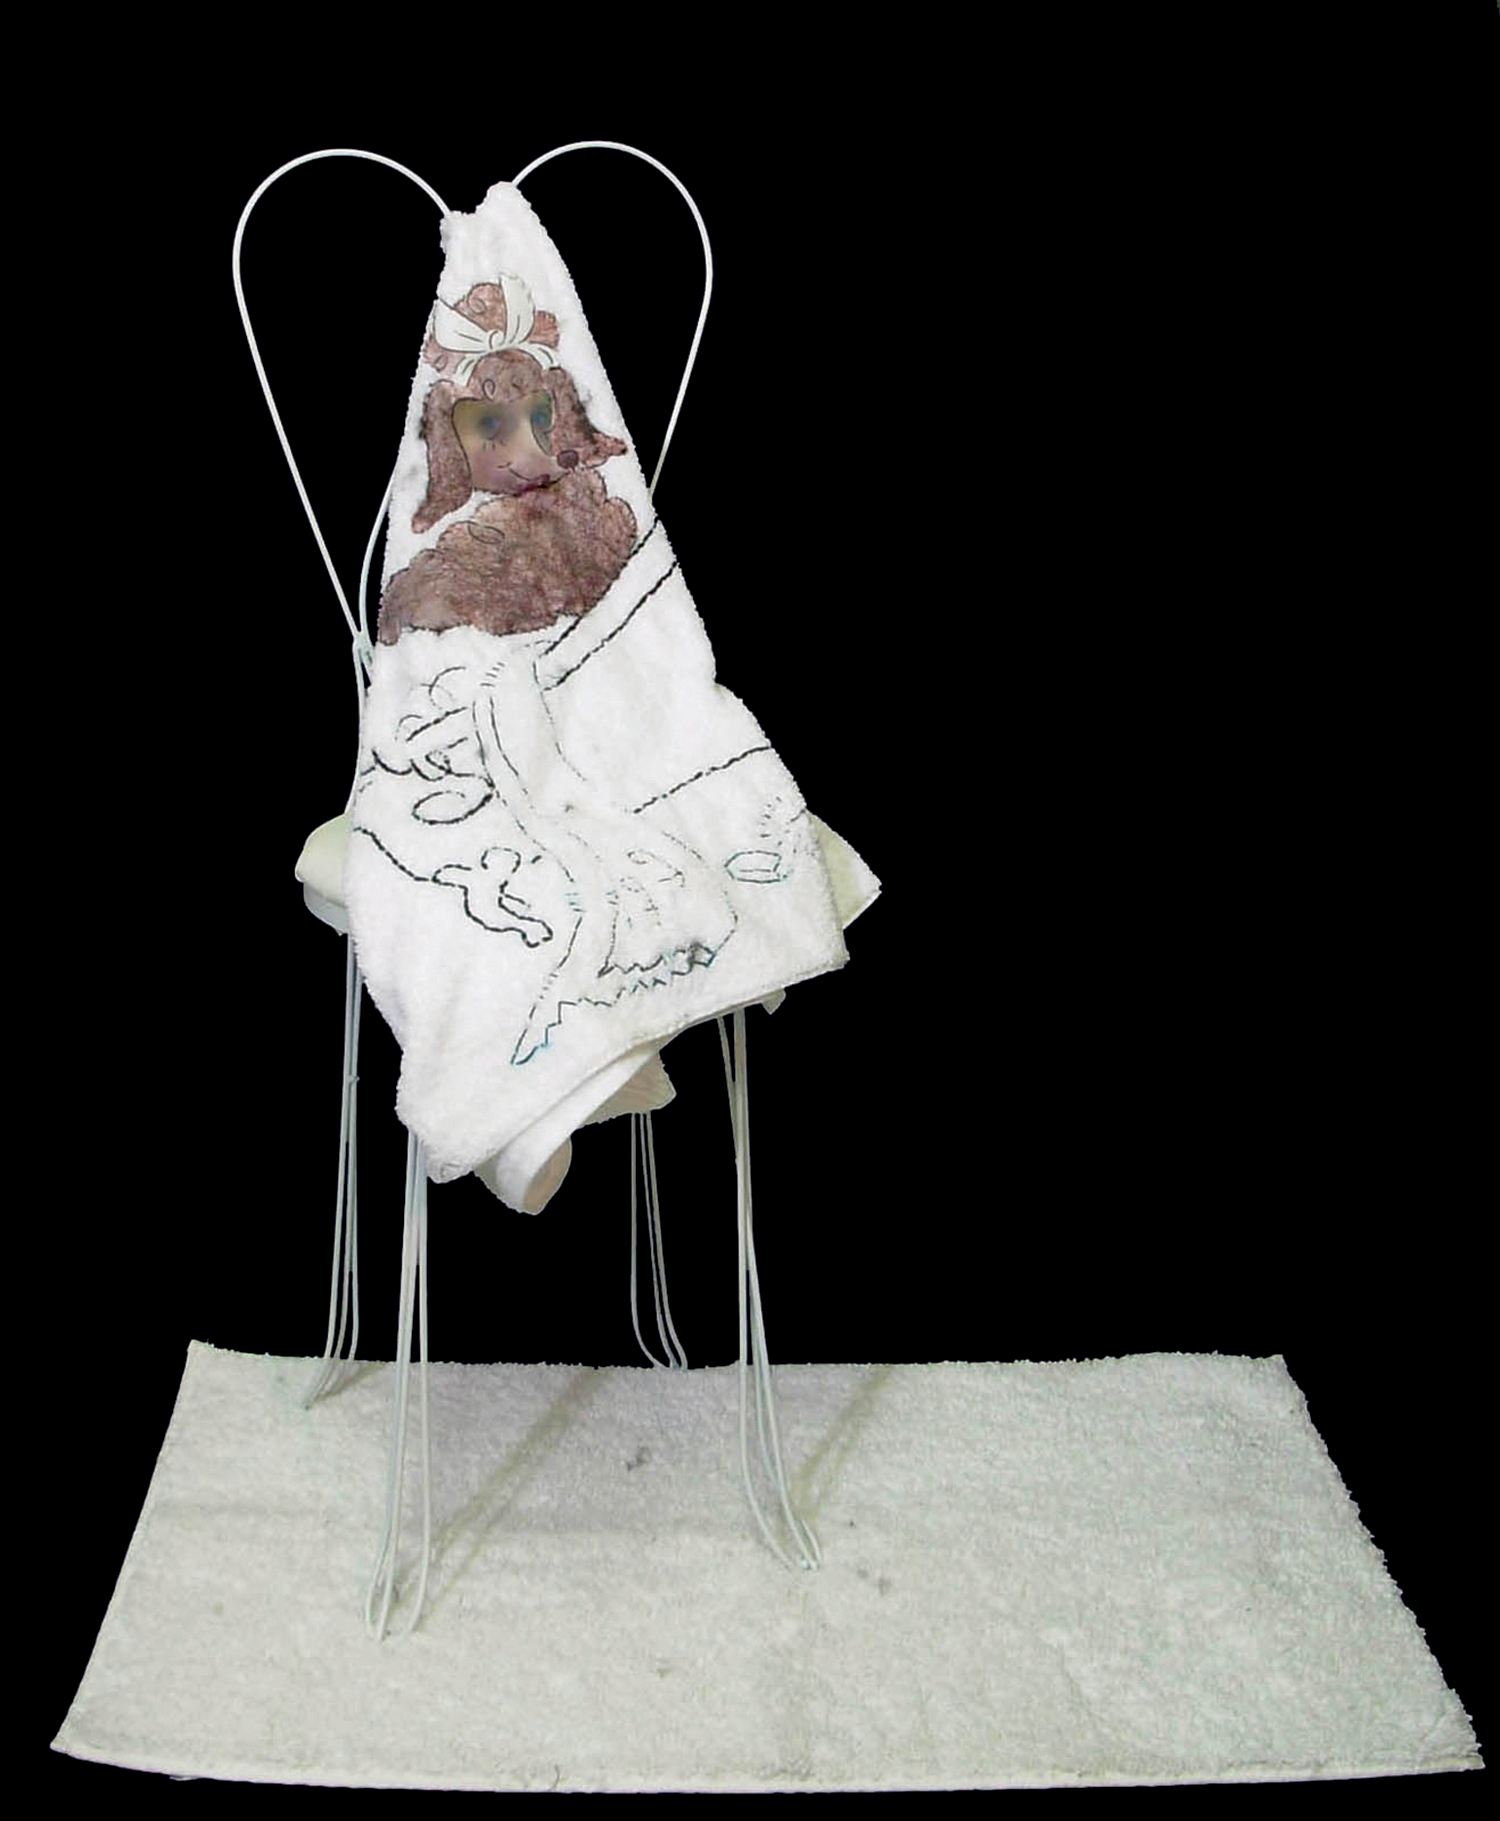 Saturday's Poodle , 2007, Digitally printed silk, mixed fabrics, welded steel, motor, sensor, 43 x 17 x 18 inches